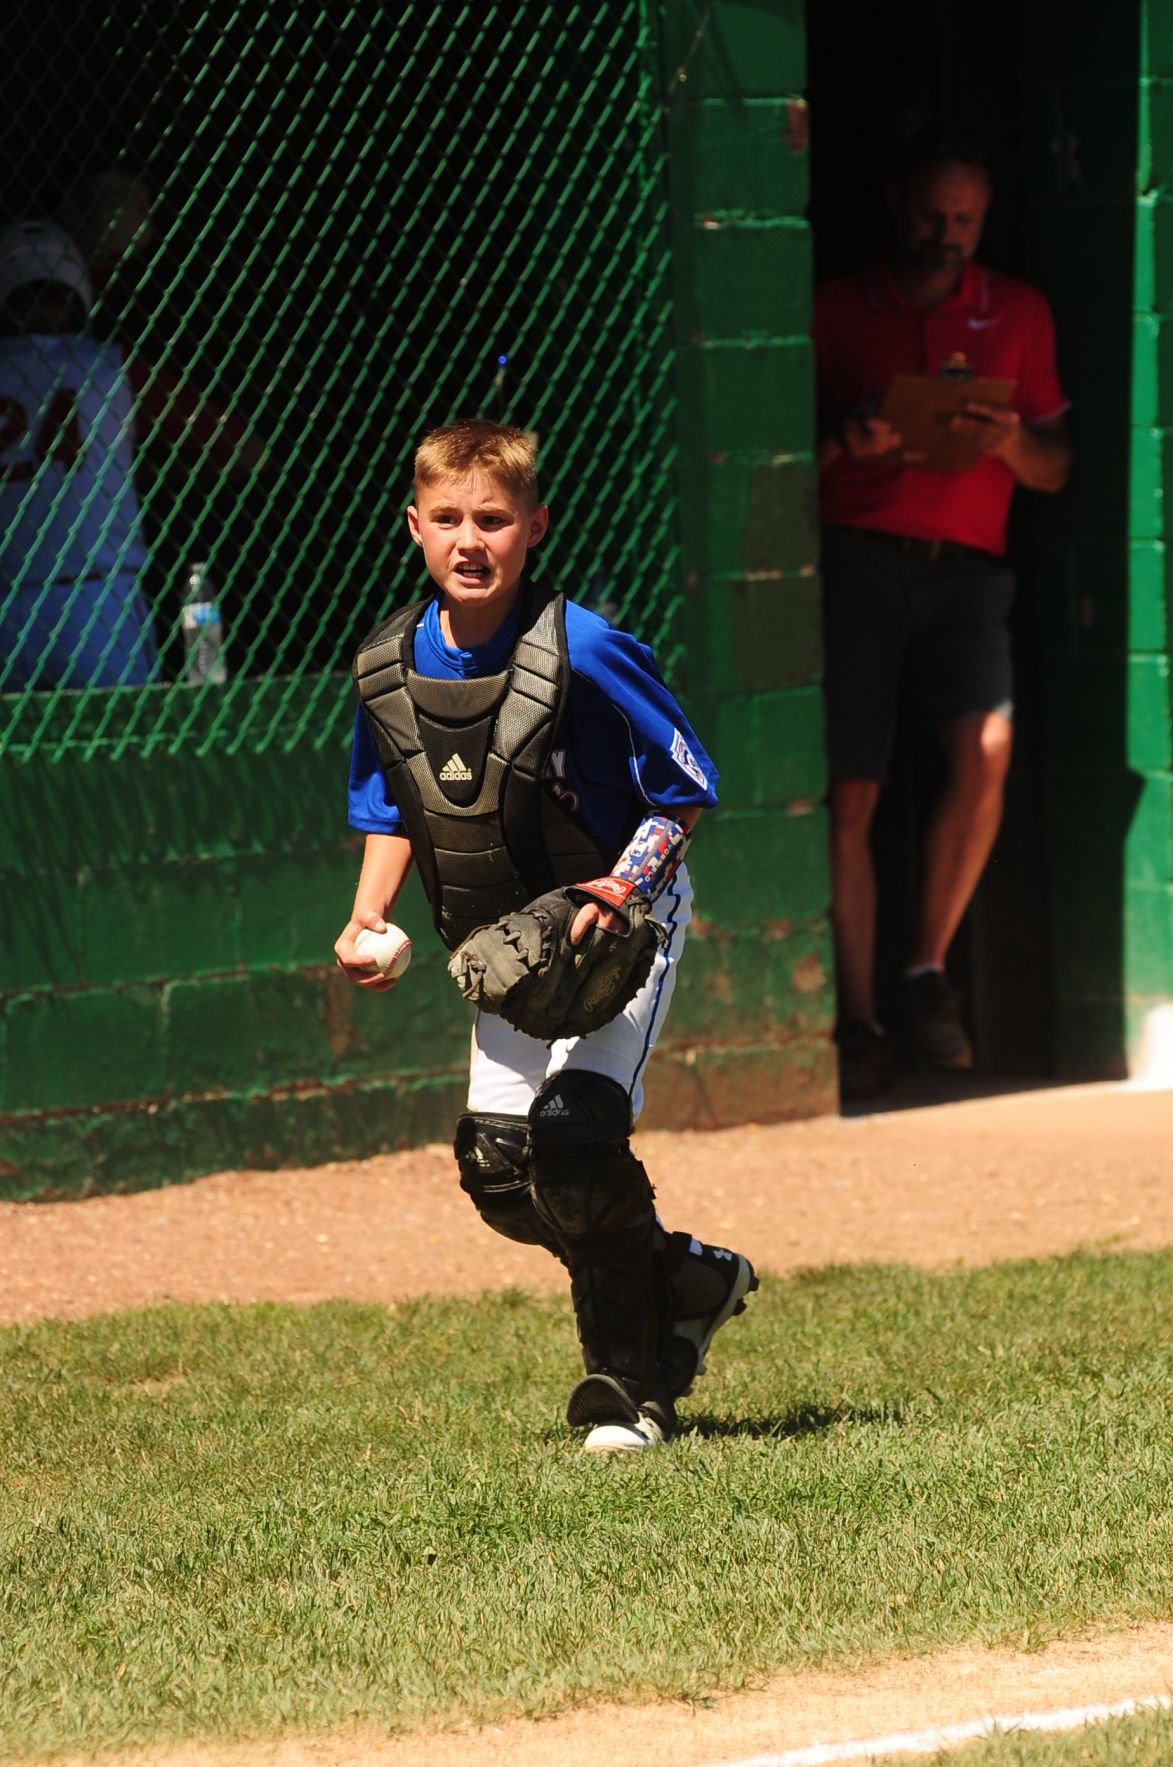 Preston Conner Osborne comes up with a great foul ball pop up c atch.JPG